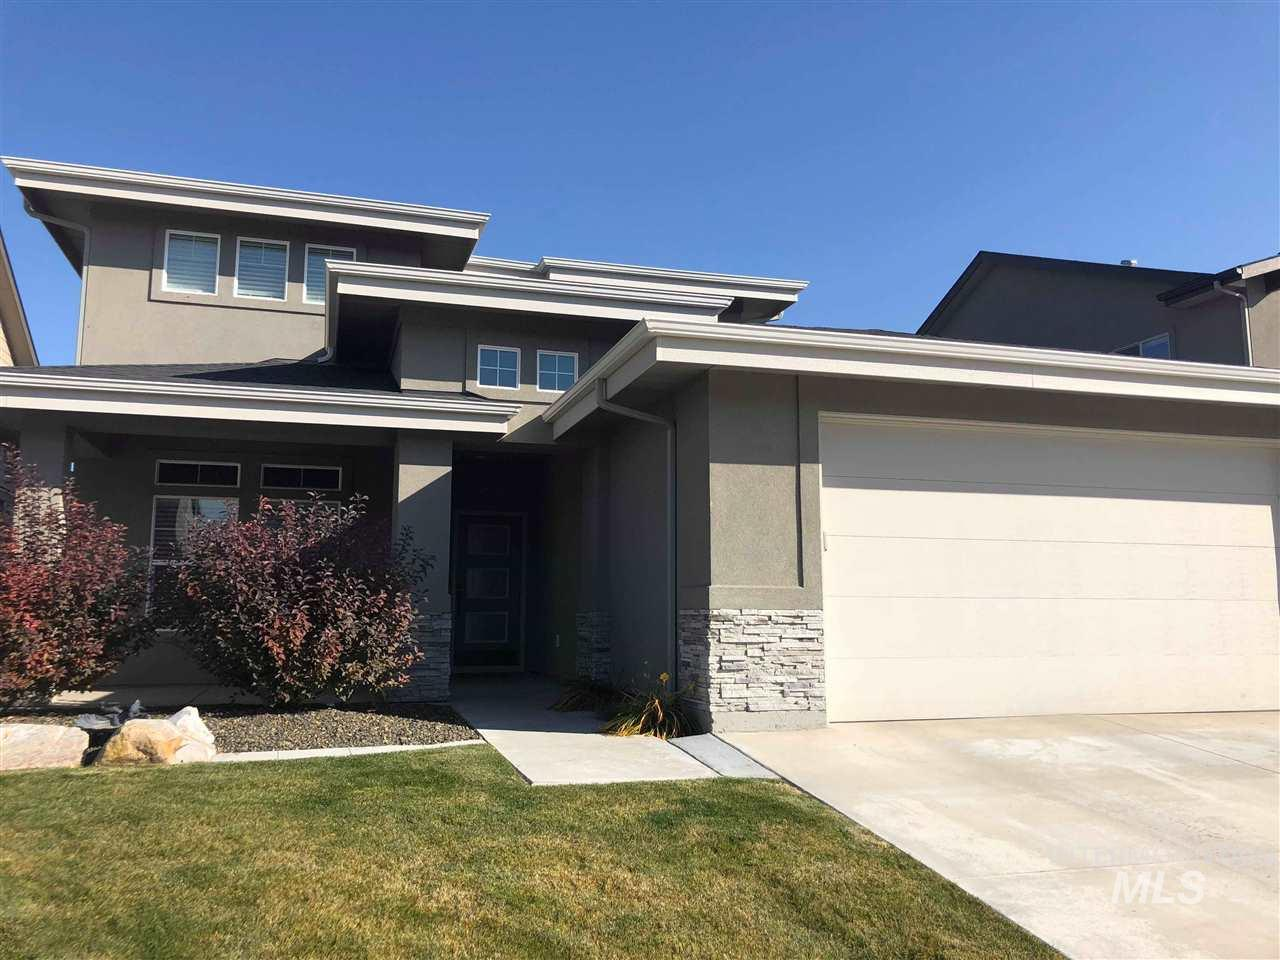 8118 S Red Cliff Ave, Boise, Idaho 83716, 5 Bedrooms, 2.5 Bathrooms, Rental For Rent, Price $2,175, 98715833